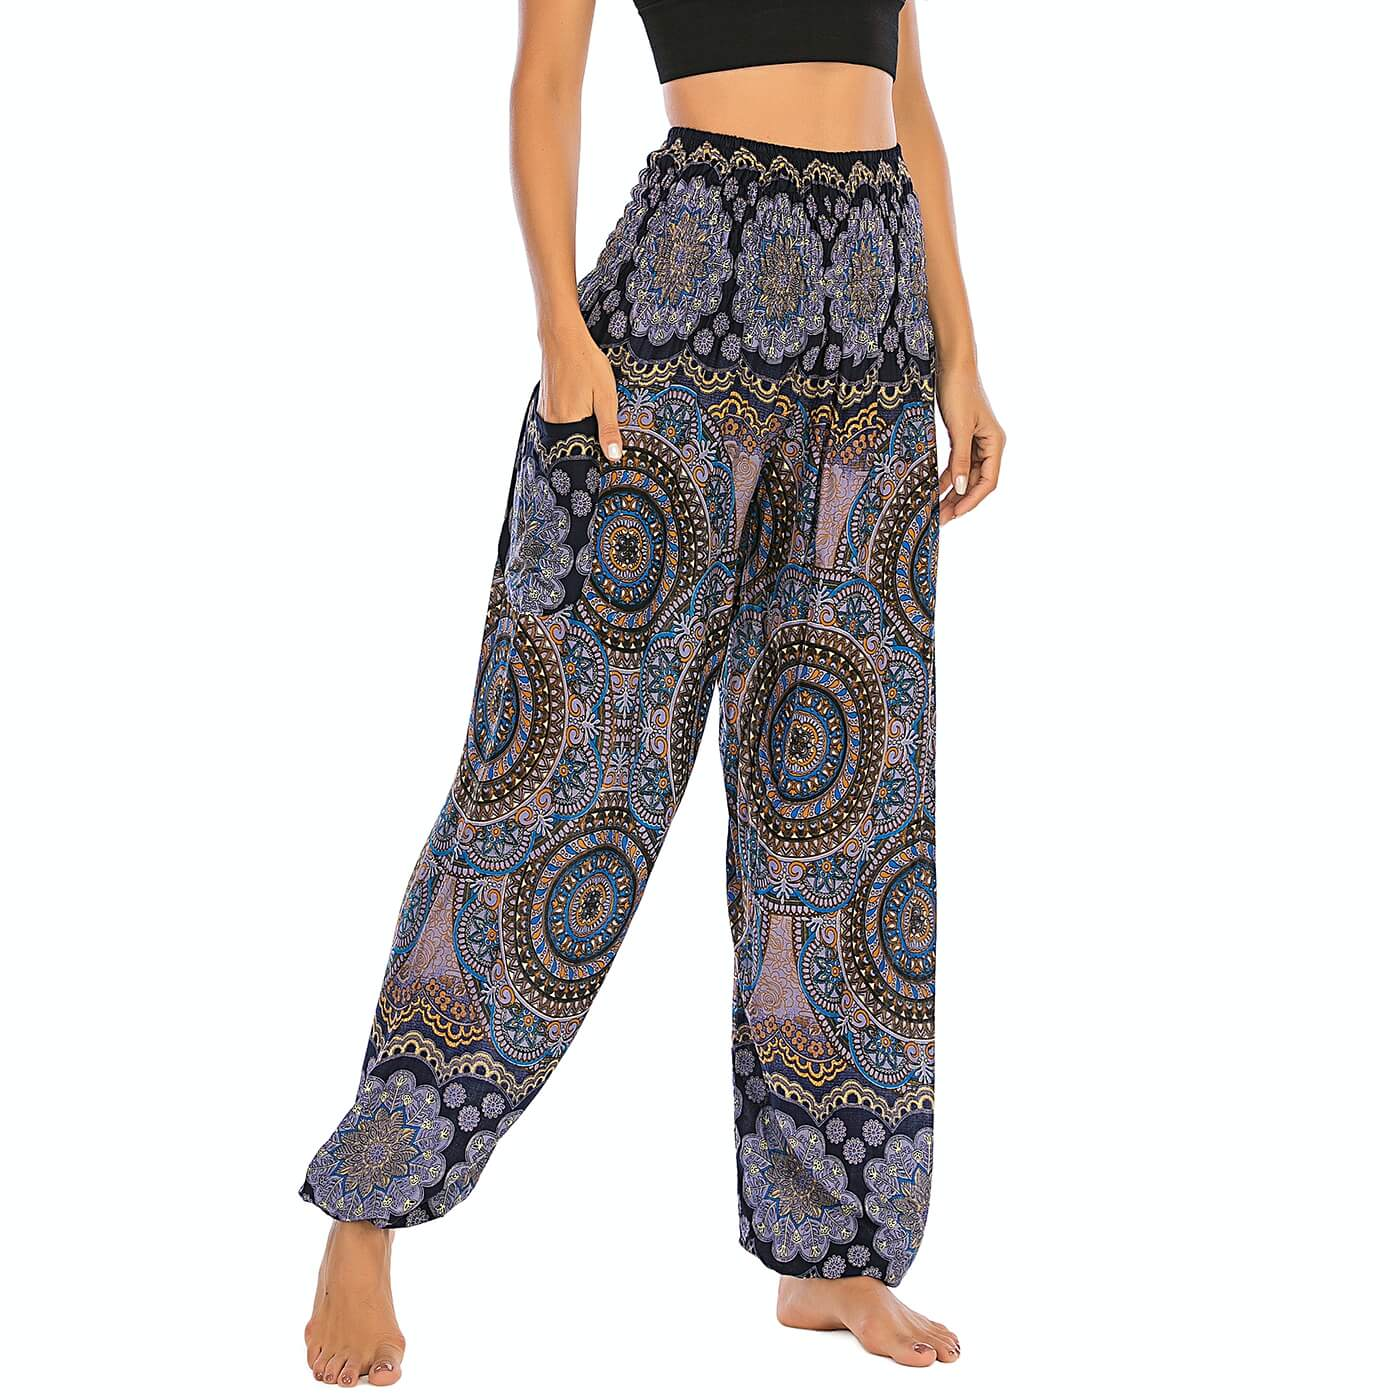 Empower your energy flow and blood circulation during yoga practice with these Bohemian Geometric Circle Mandala Yoga Harem Pants - Cornflower. Featuring circle and geometric mandalas, these loose fitting yoga pants are the must-have companion for your yoga journey, be it for asanas, pranayama, or meditation. With high rise smocked waist and elastic ankles, these loose yoga pants can be adjusted to different styles. Handmade by Thai people with natural plant dye techniques. Also perfect for holiday travel.